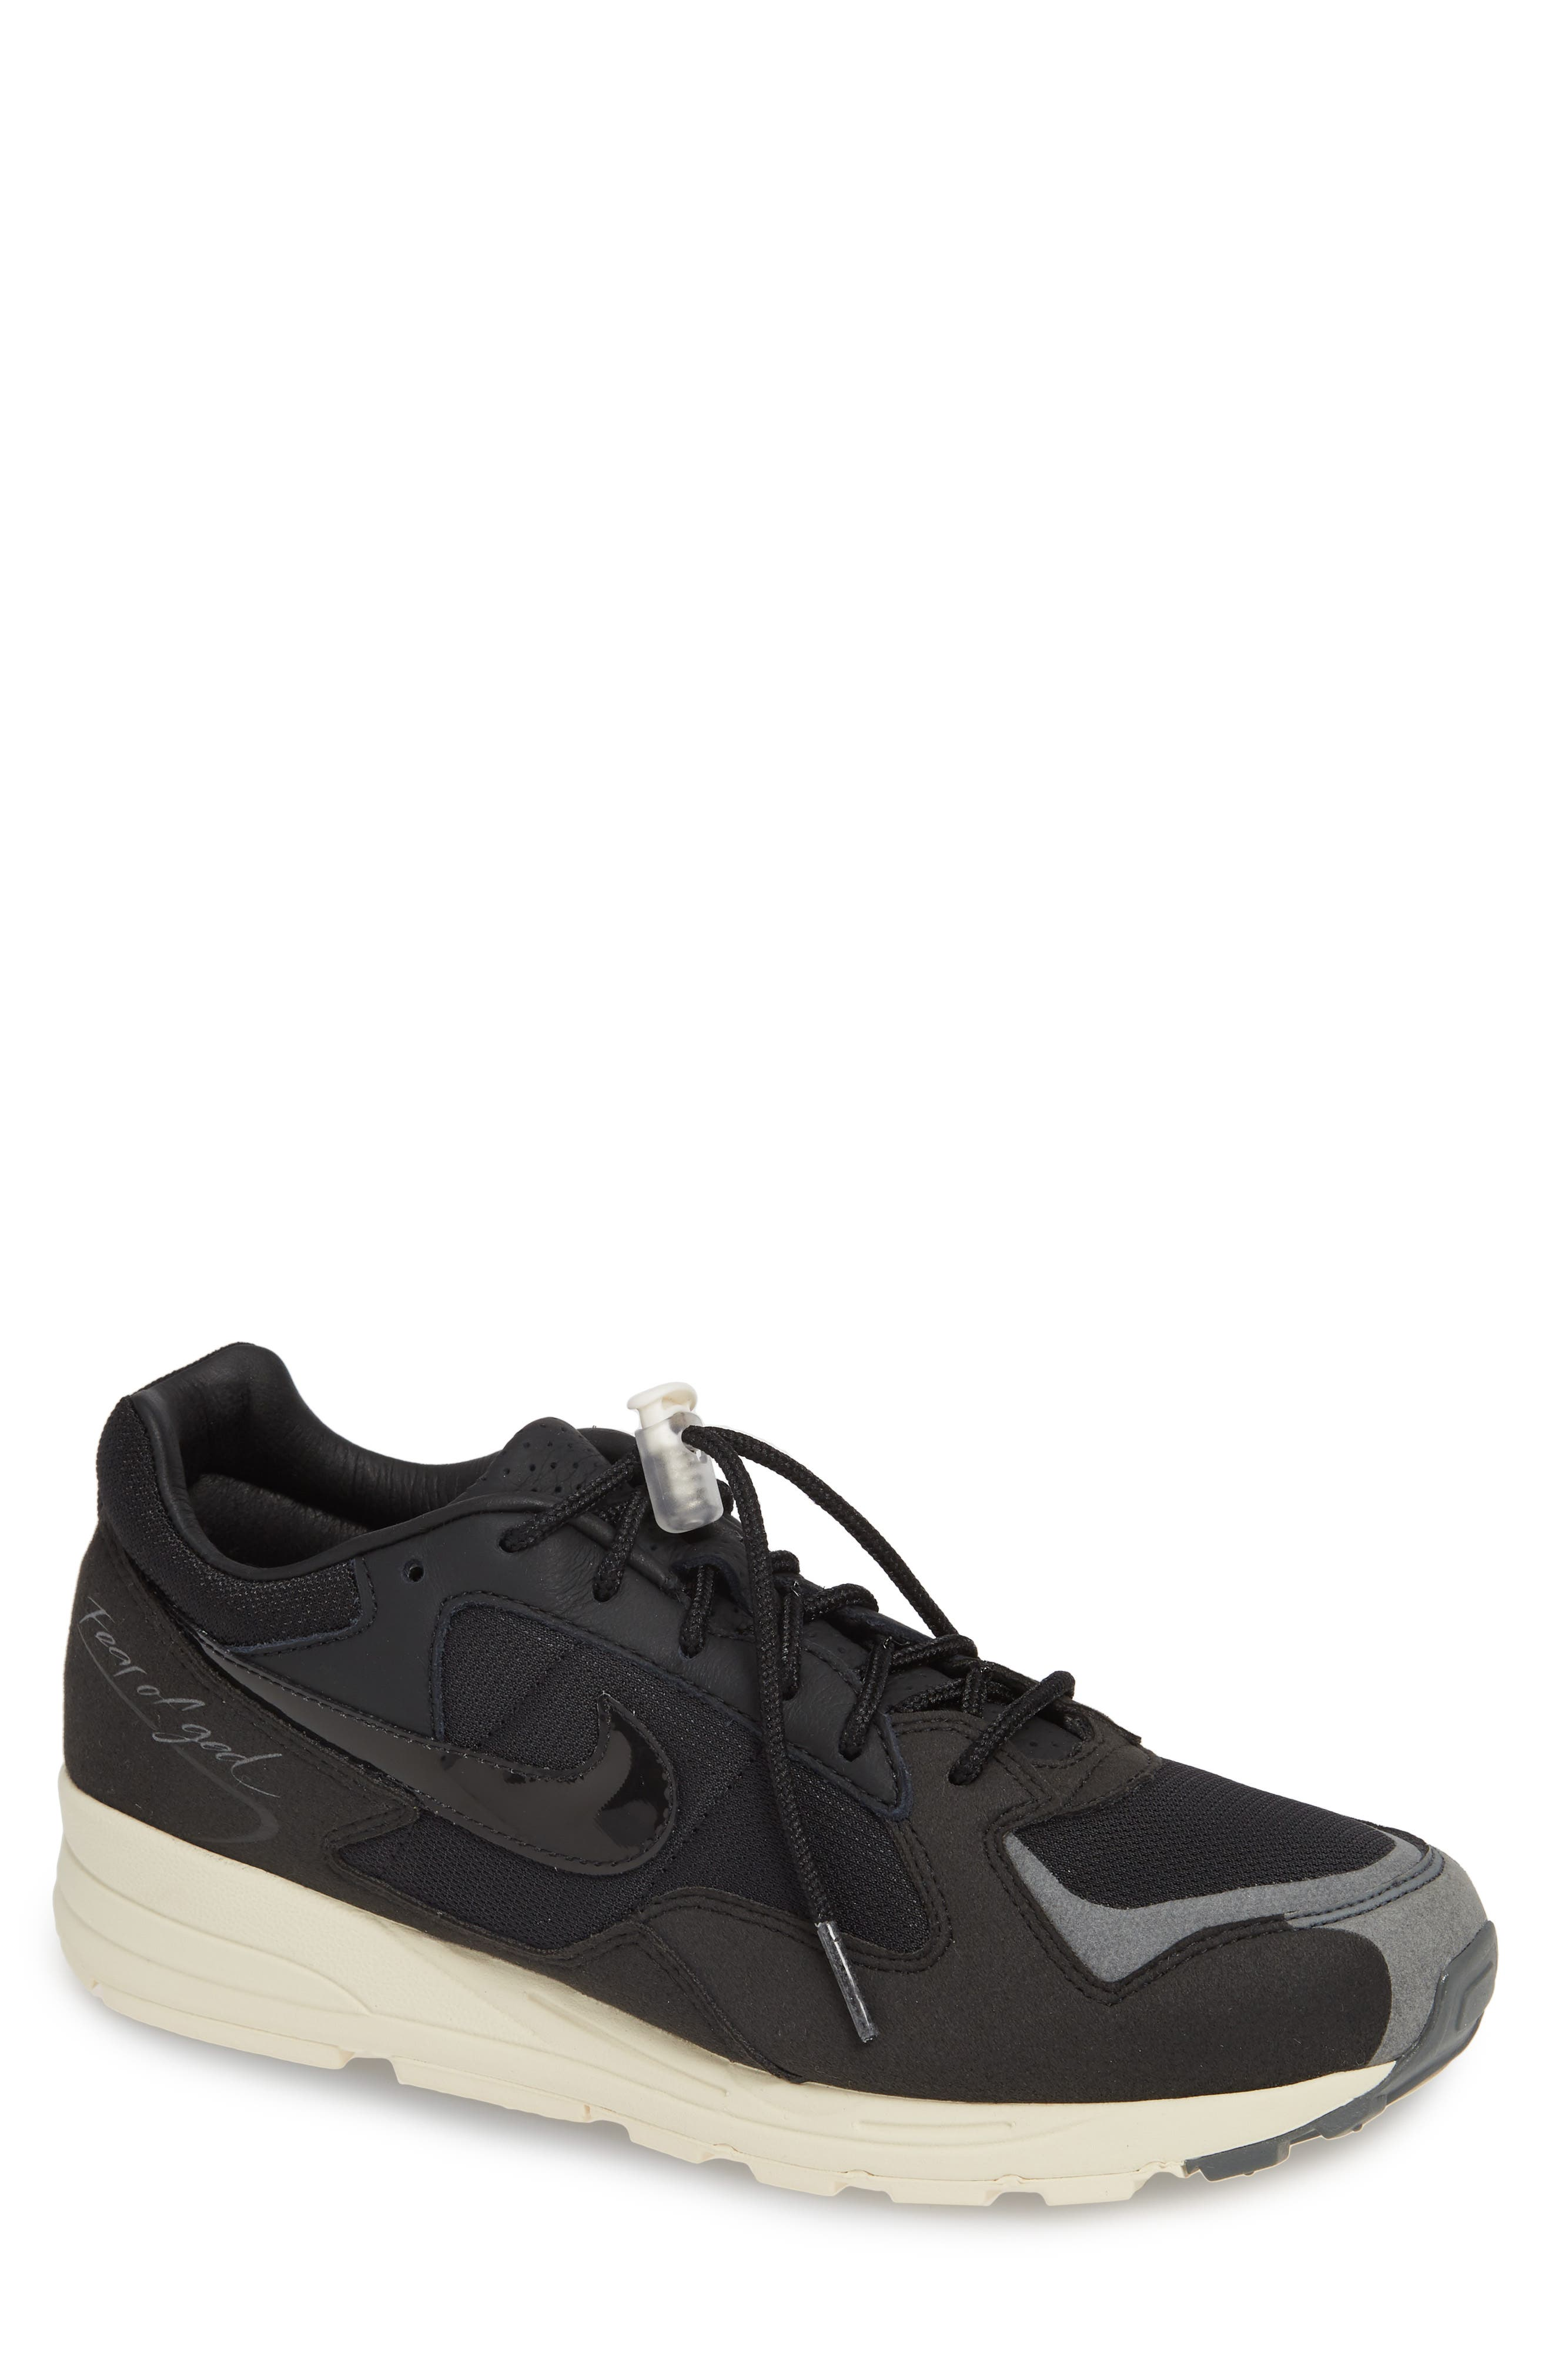 Air Skylon II/Fog Sneaker,                             Main thumbnail 1, color,                             001